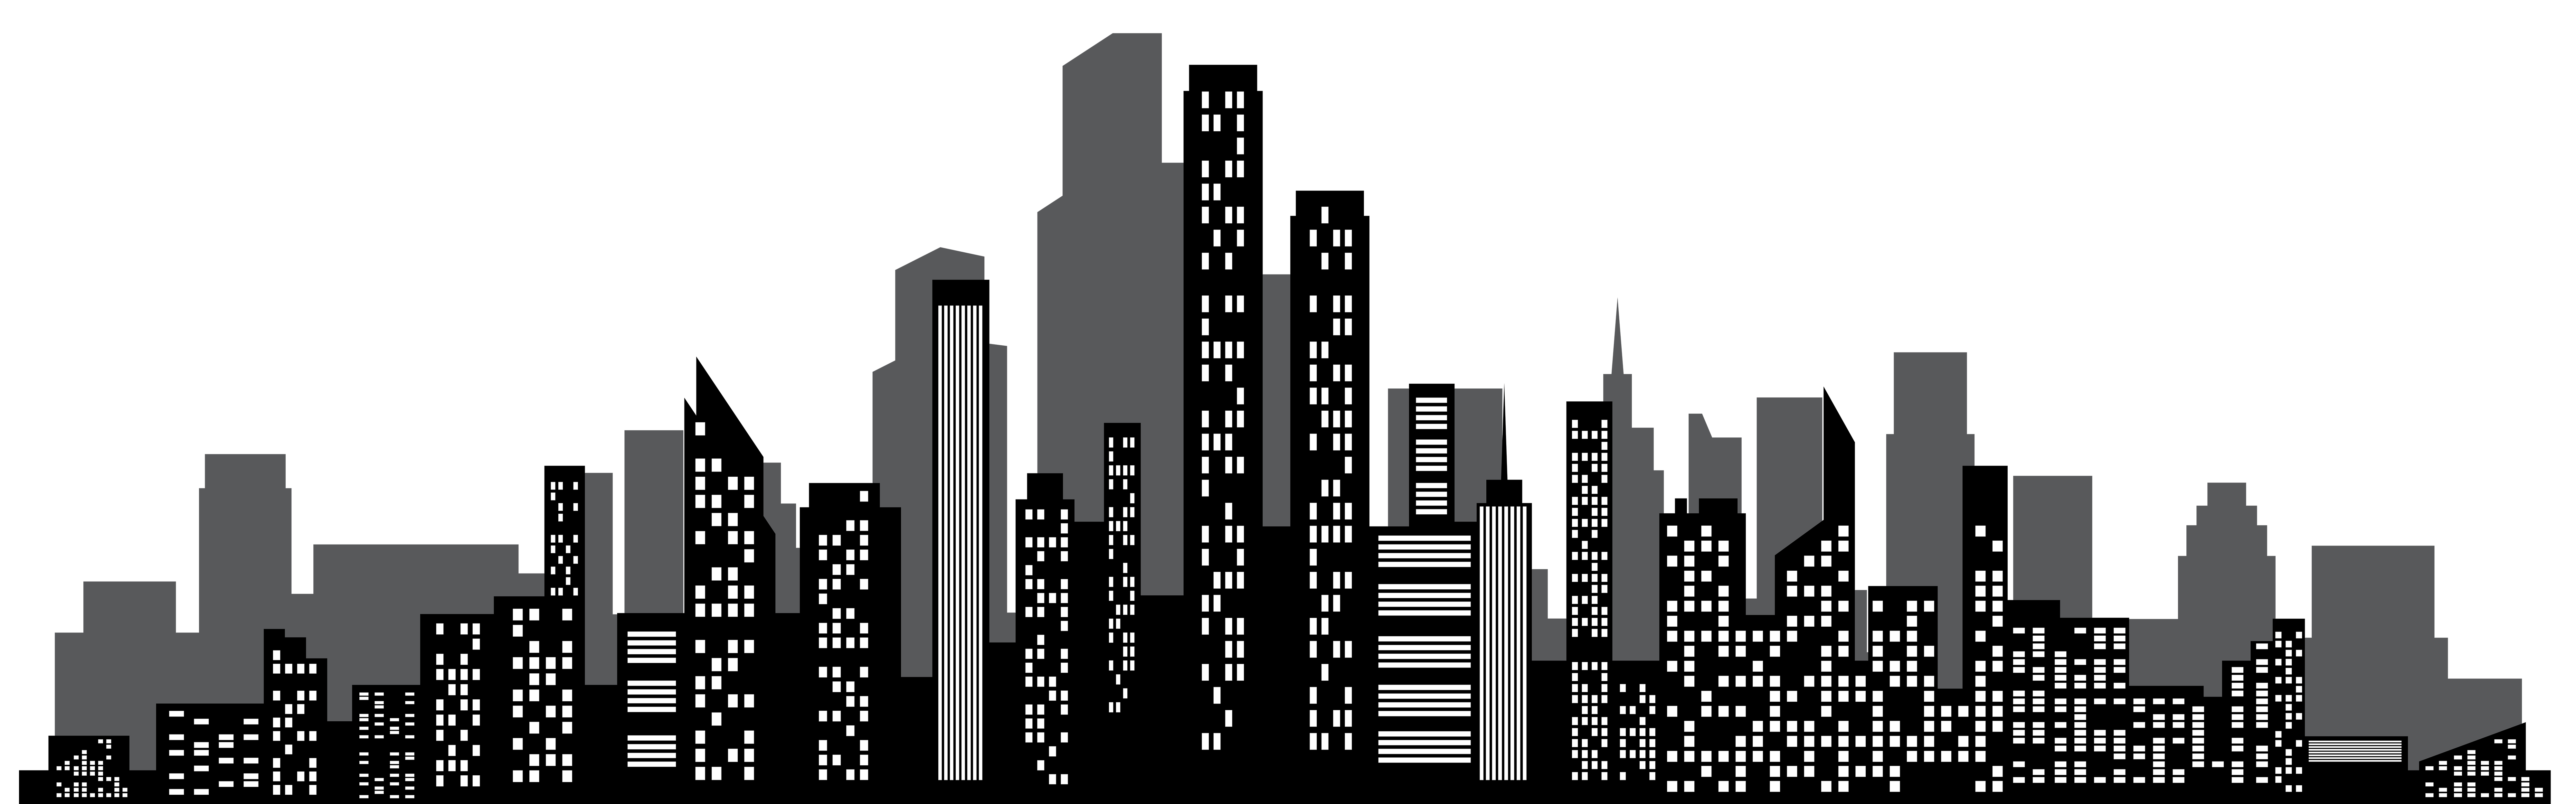 graphic freeuse stock  collection of images. Cityscape clipart batman.